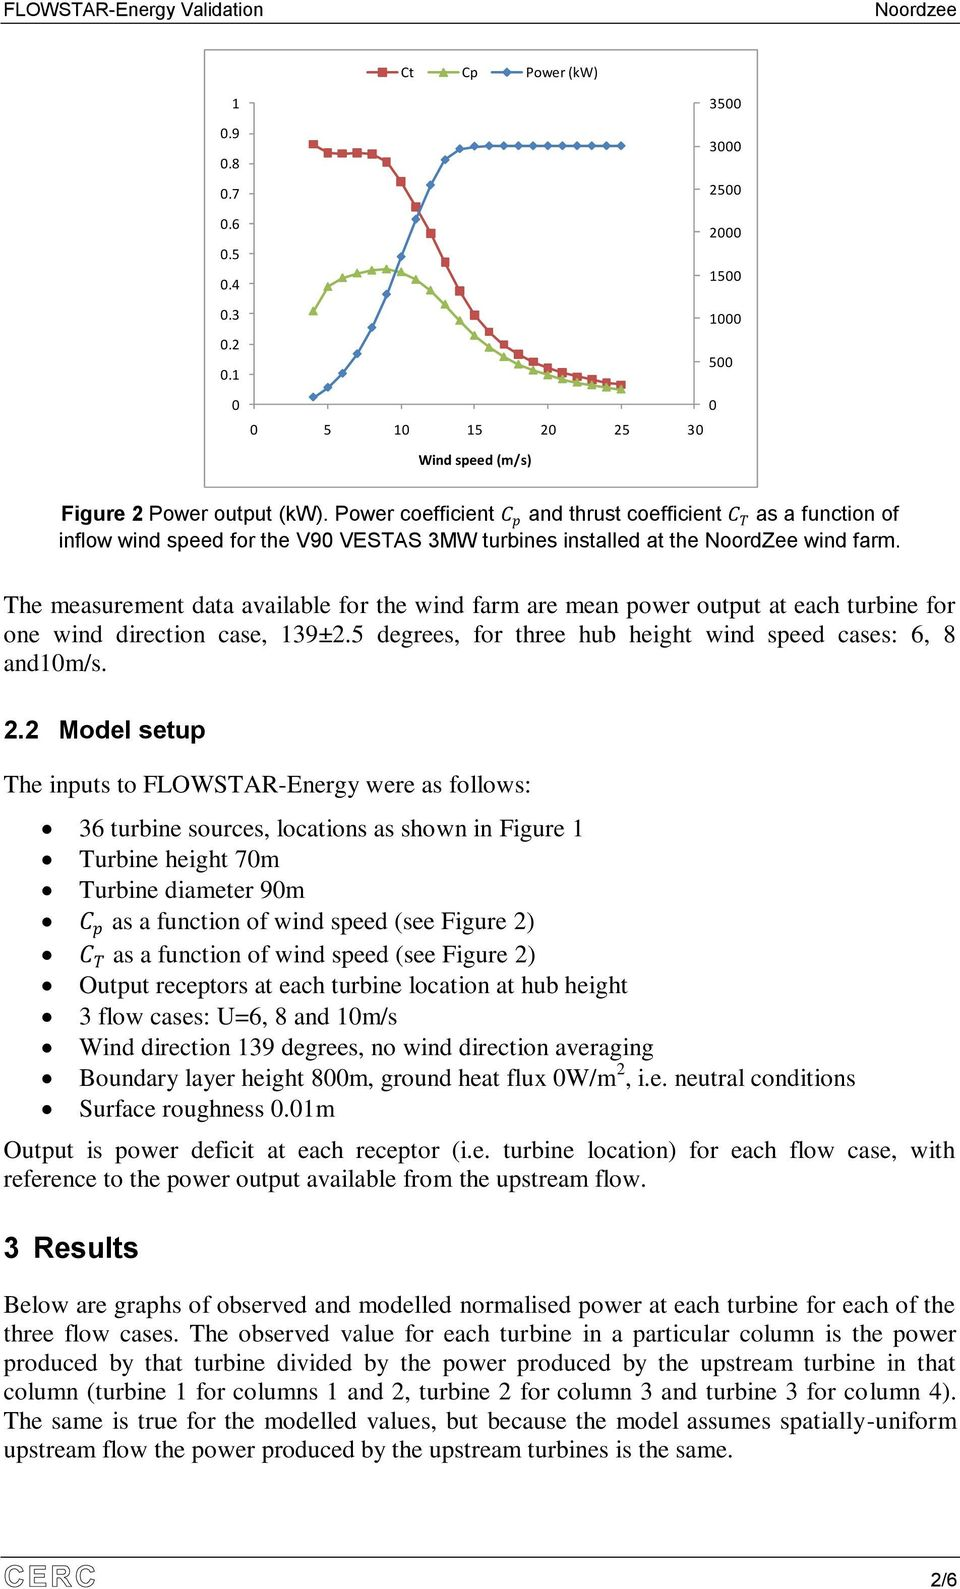 The measurement data available for the wind farm are mean power output at each turbine for one wind direction case, 39±2.5 degrees, for three hub height wind speed cases: 6, 8 andm/s. 2.